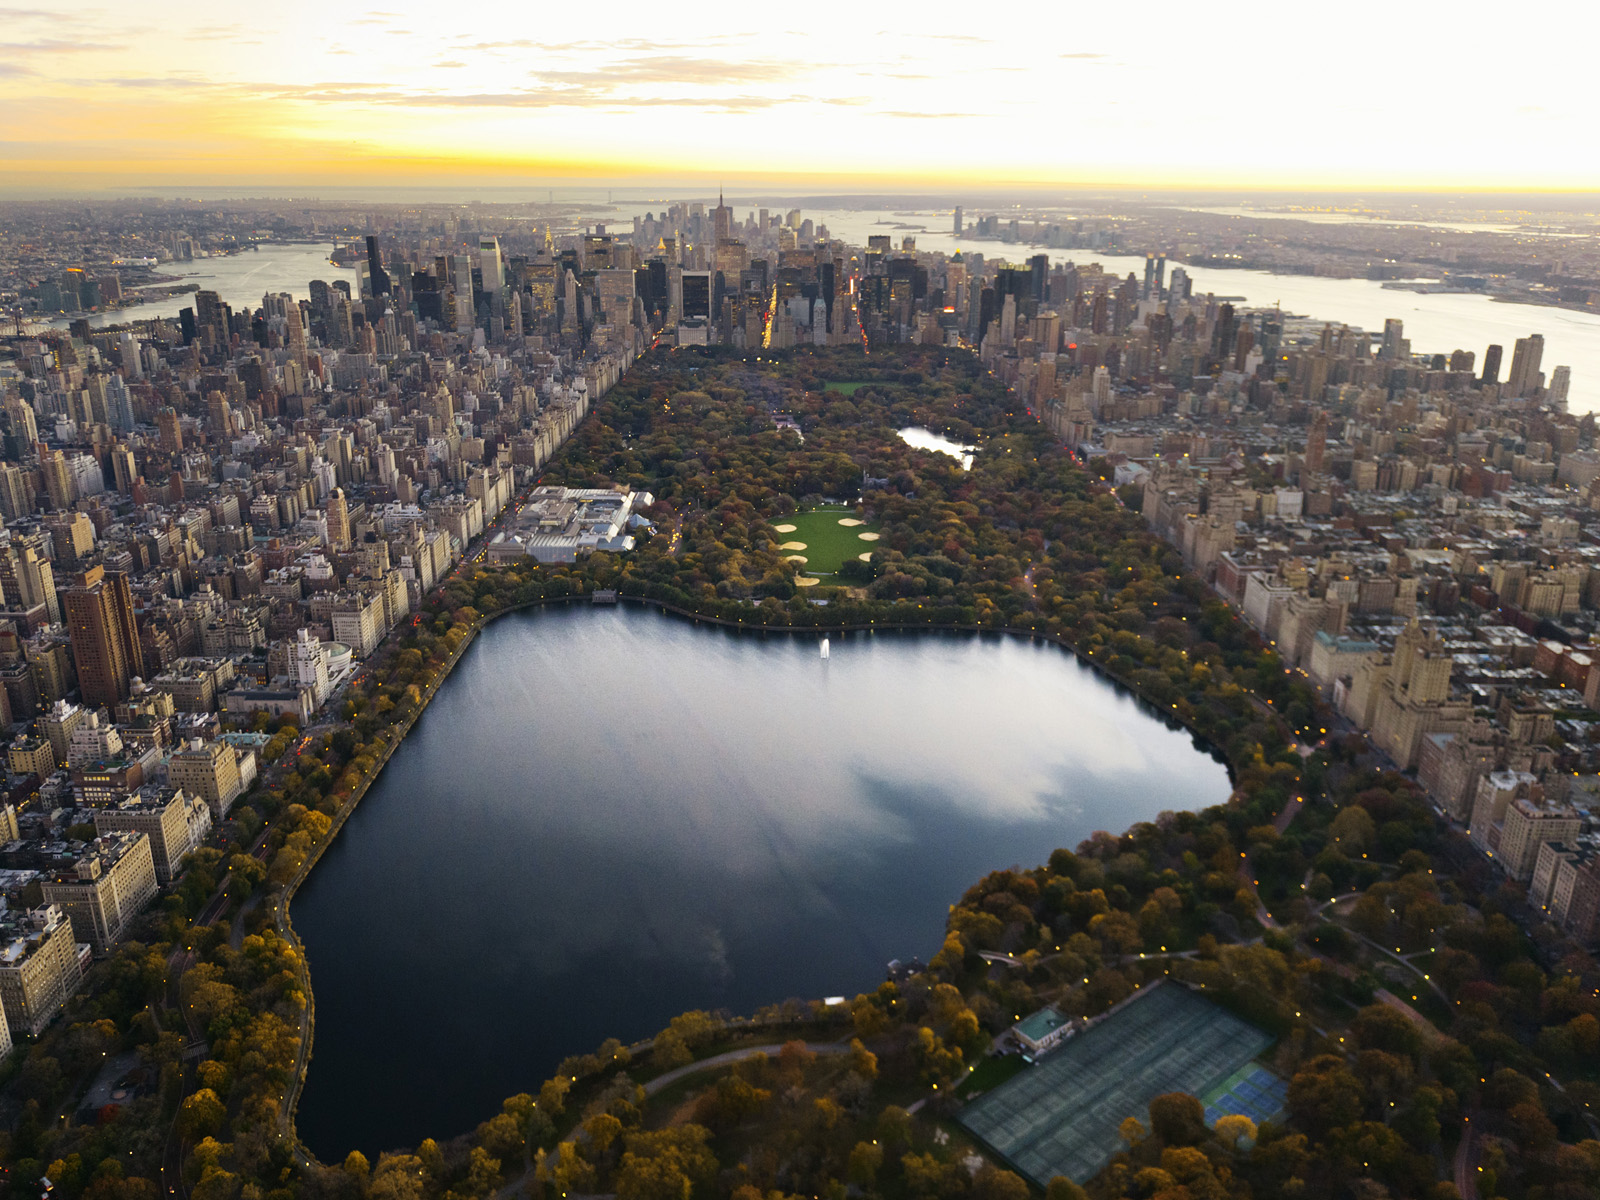 08 Jan 2007, New York, New York, USA --- Aerial view of Central Park and Manhattan --- Image by © Cameron Davidson/Corbis